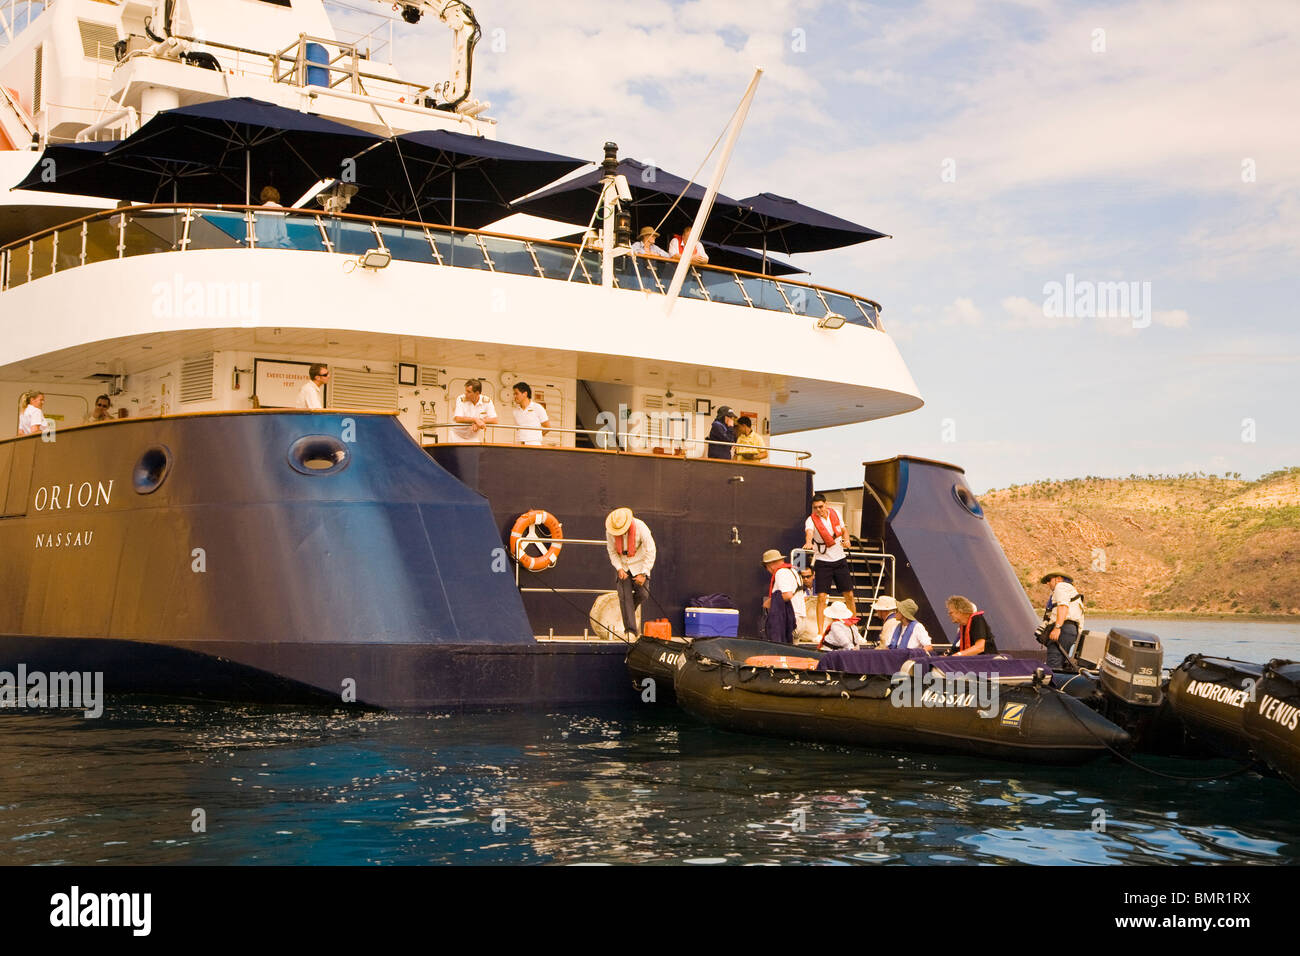 Excusion Zodiacs embark/disembark from a convenient platform on the lower rear deck of the Aussie expedition vessel - Stock Image